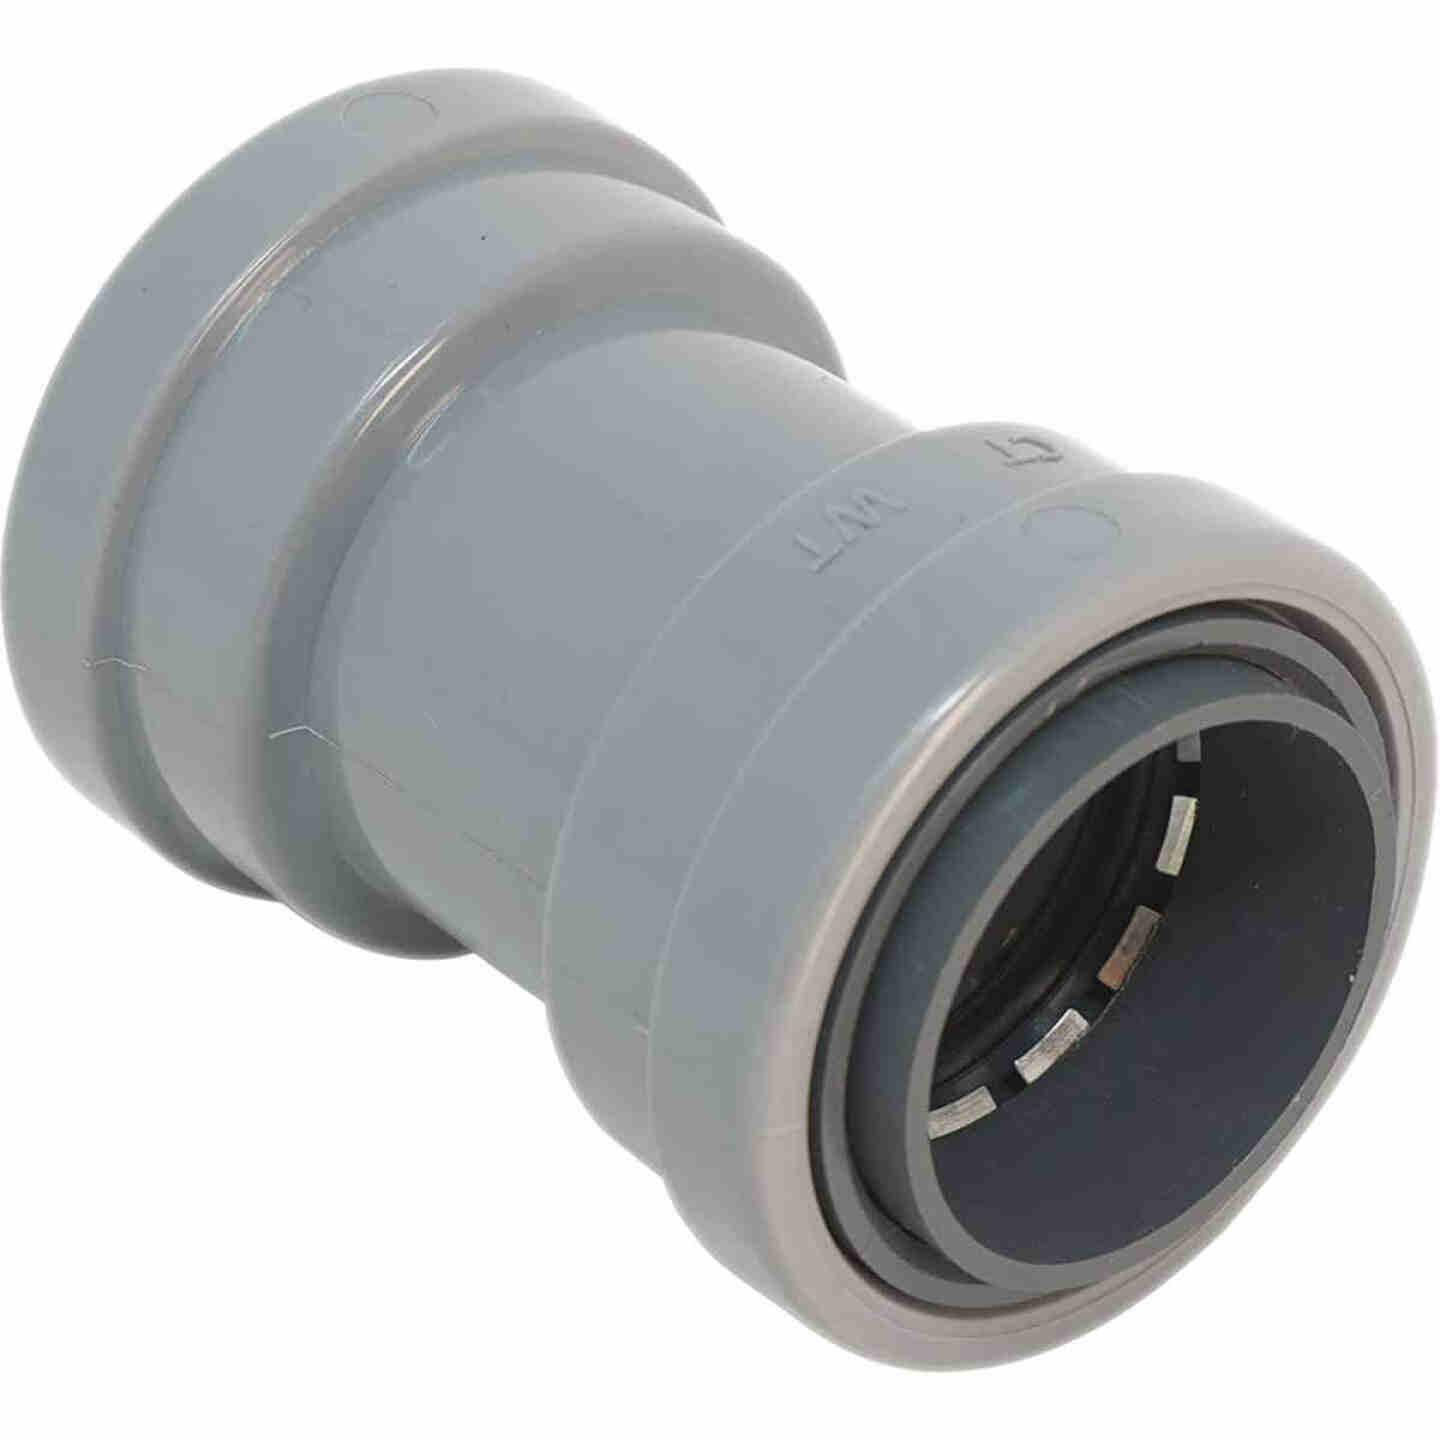 Southwire SimPush 1/2 In. PVC-CIC Push-To-Install Conduit Coupling (5-Pack) Image 1